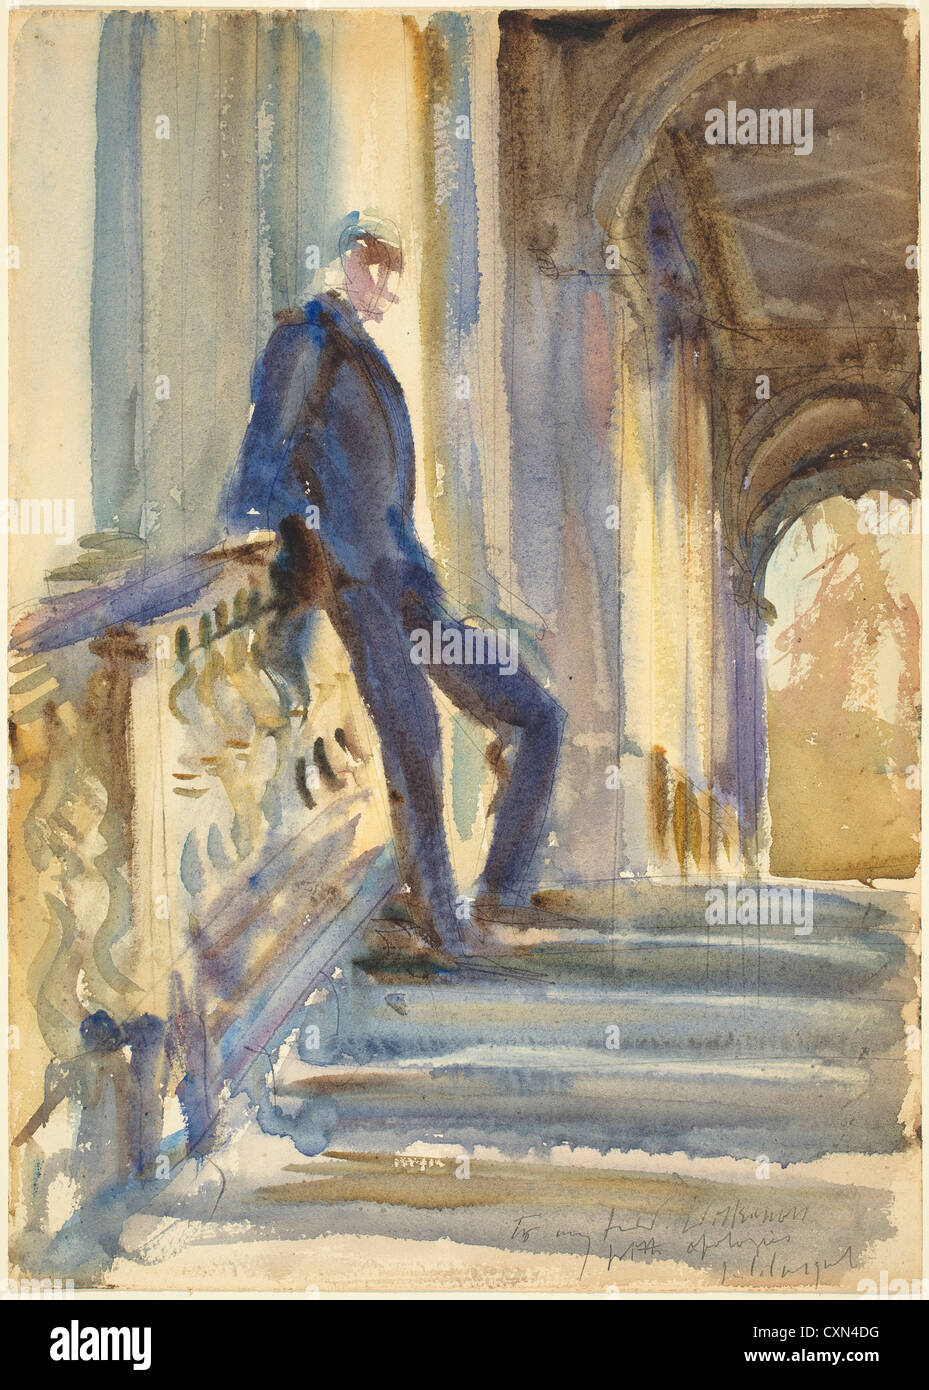 John Singer Sargent, Sir Neville Wilkenson on the Steps of a Venetian Palazzo, American, 1856 - 1925, 1905 - Stock Image